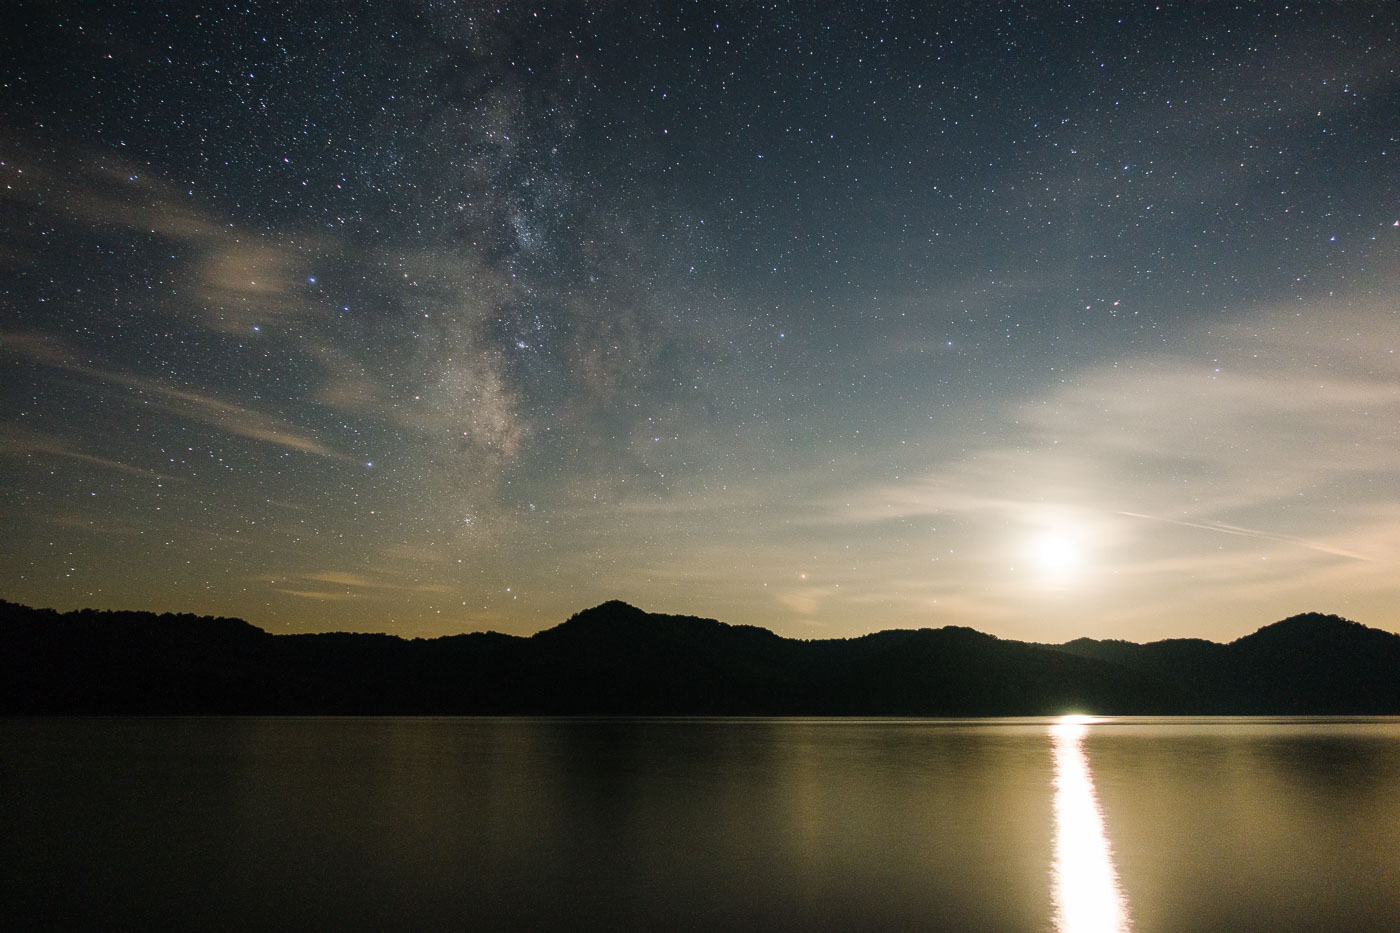 Sony RX100 Series Astrophotography Review – Lonely Speck